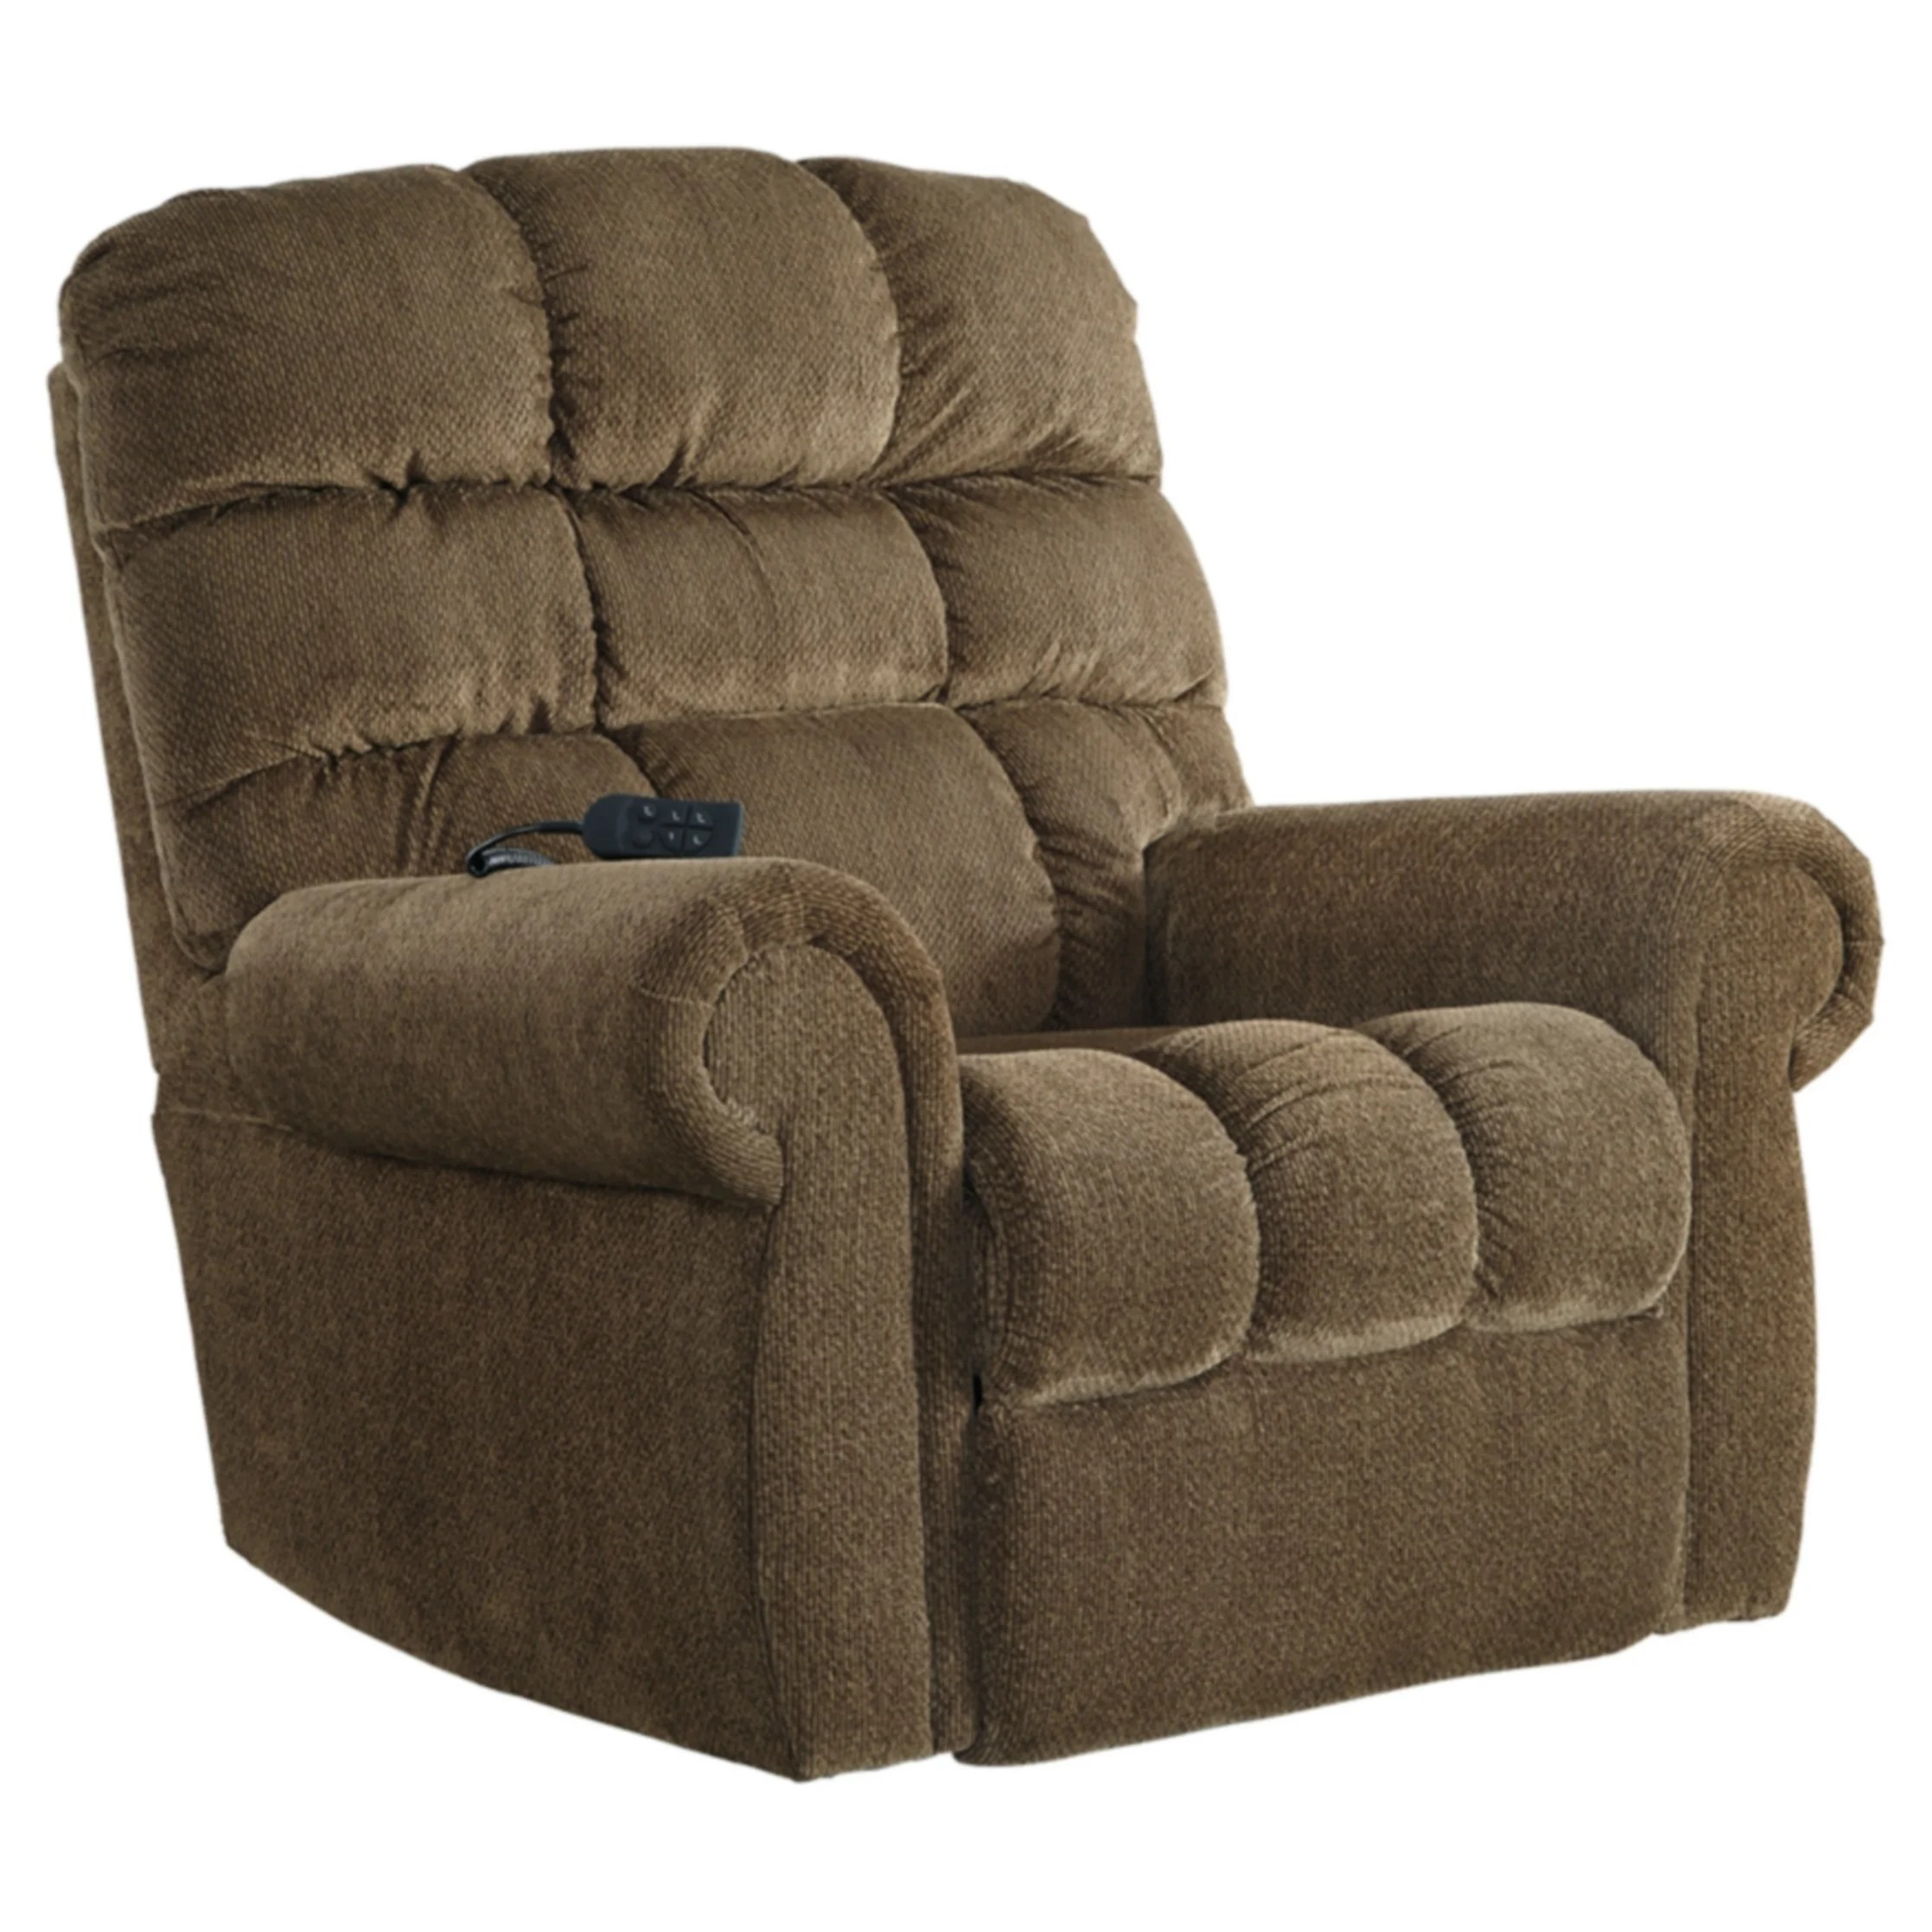 Double Wide Recliner Chair Buy Size Oversized Recliner Chairs Rocking Recliners Online At